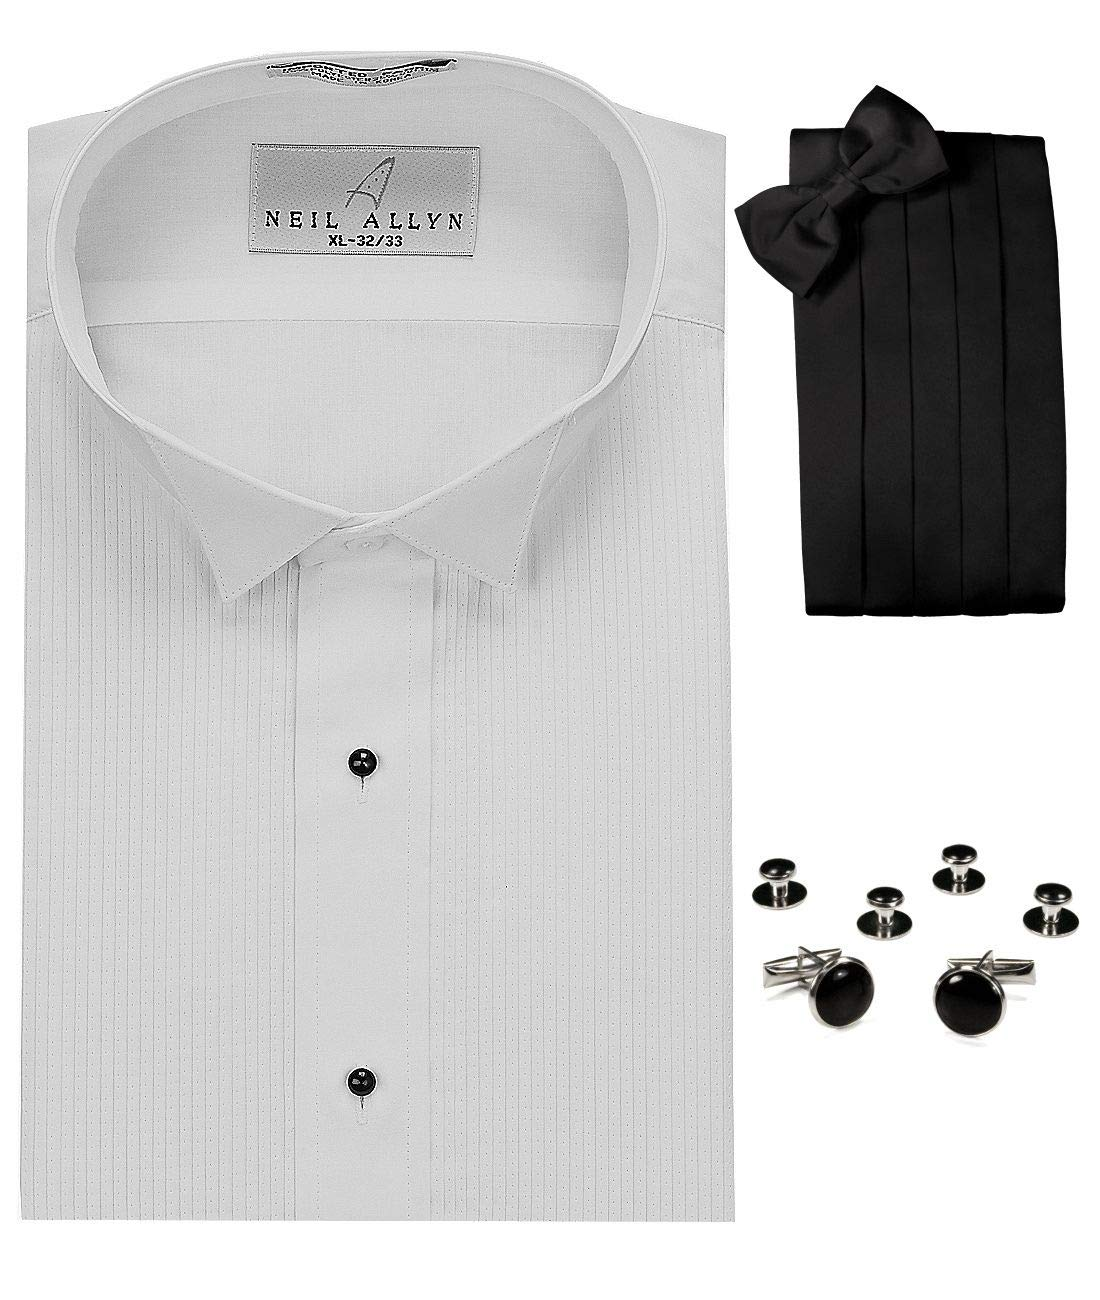 Wing Collar Tuxedo Shirt, Cummerbund, Bow-Tie, Cuff Links & Studs Set White by Neil Allyn